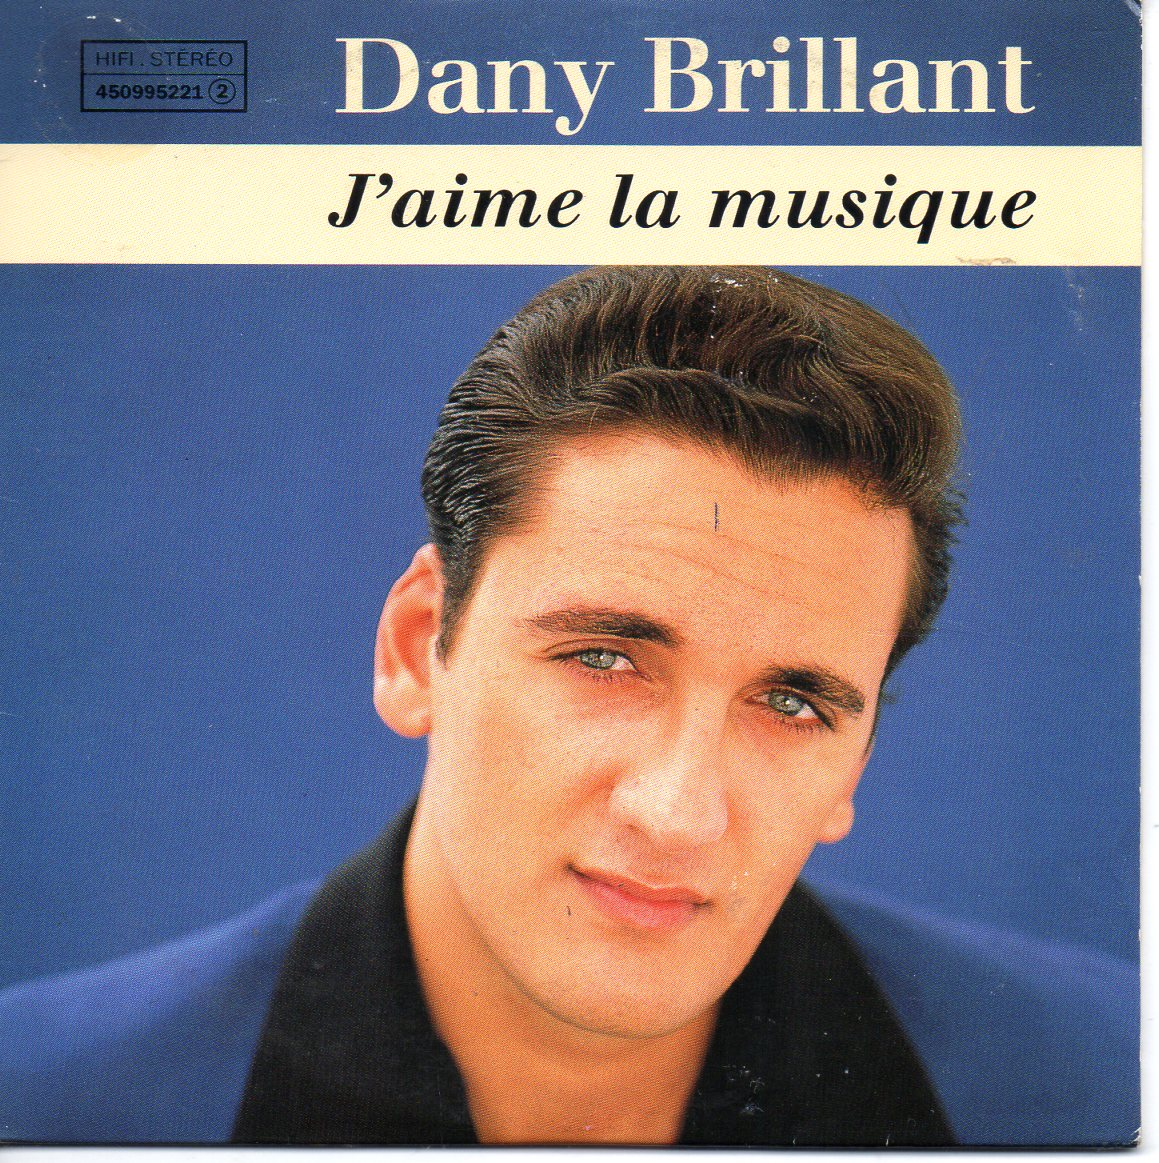 DANY BRILLANT - J'aime la musique 2-Track CARD SLEEVE - CD single